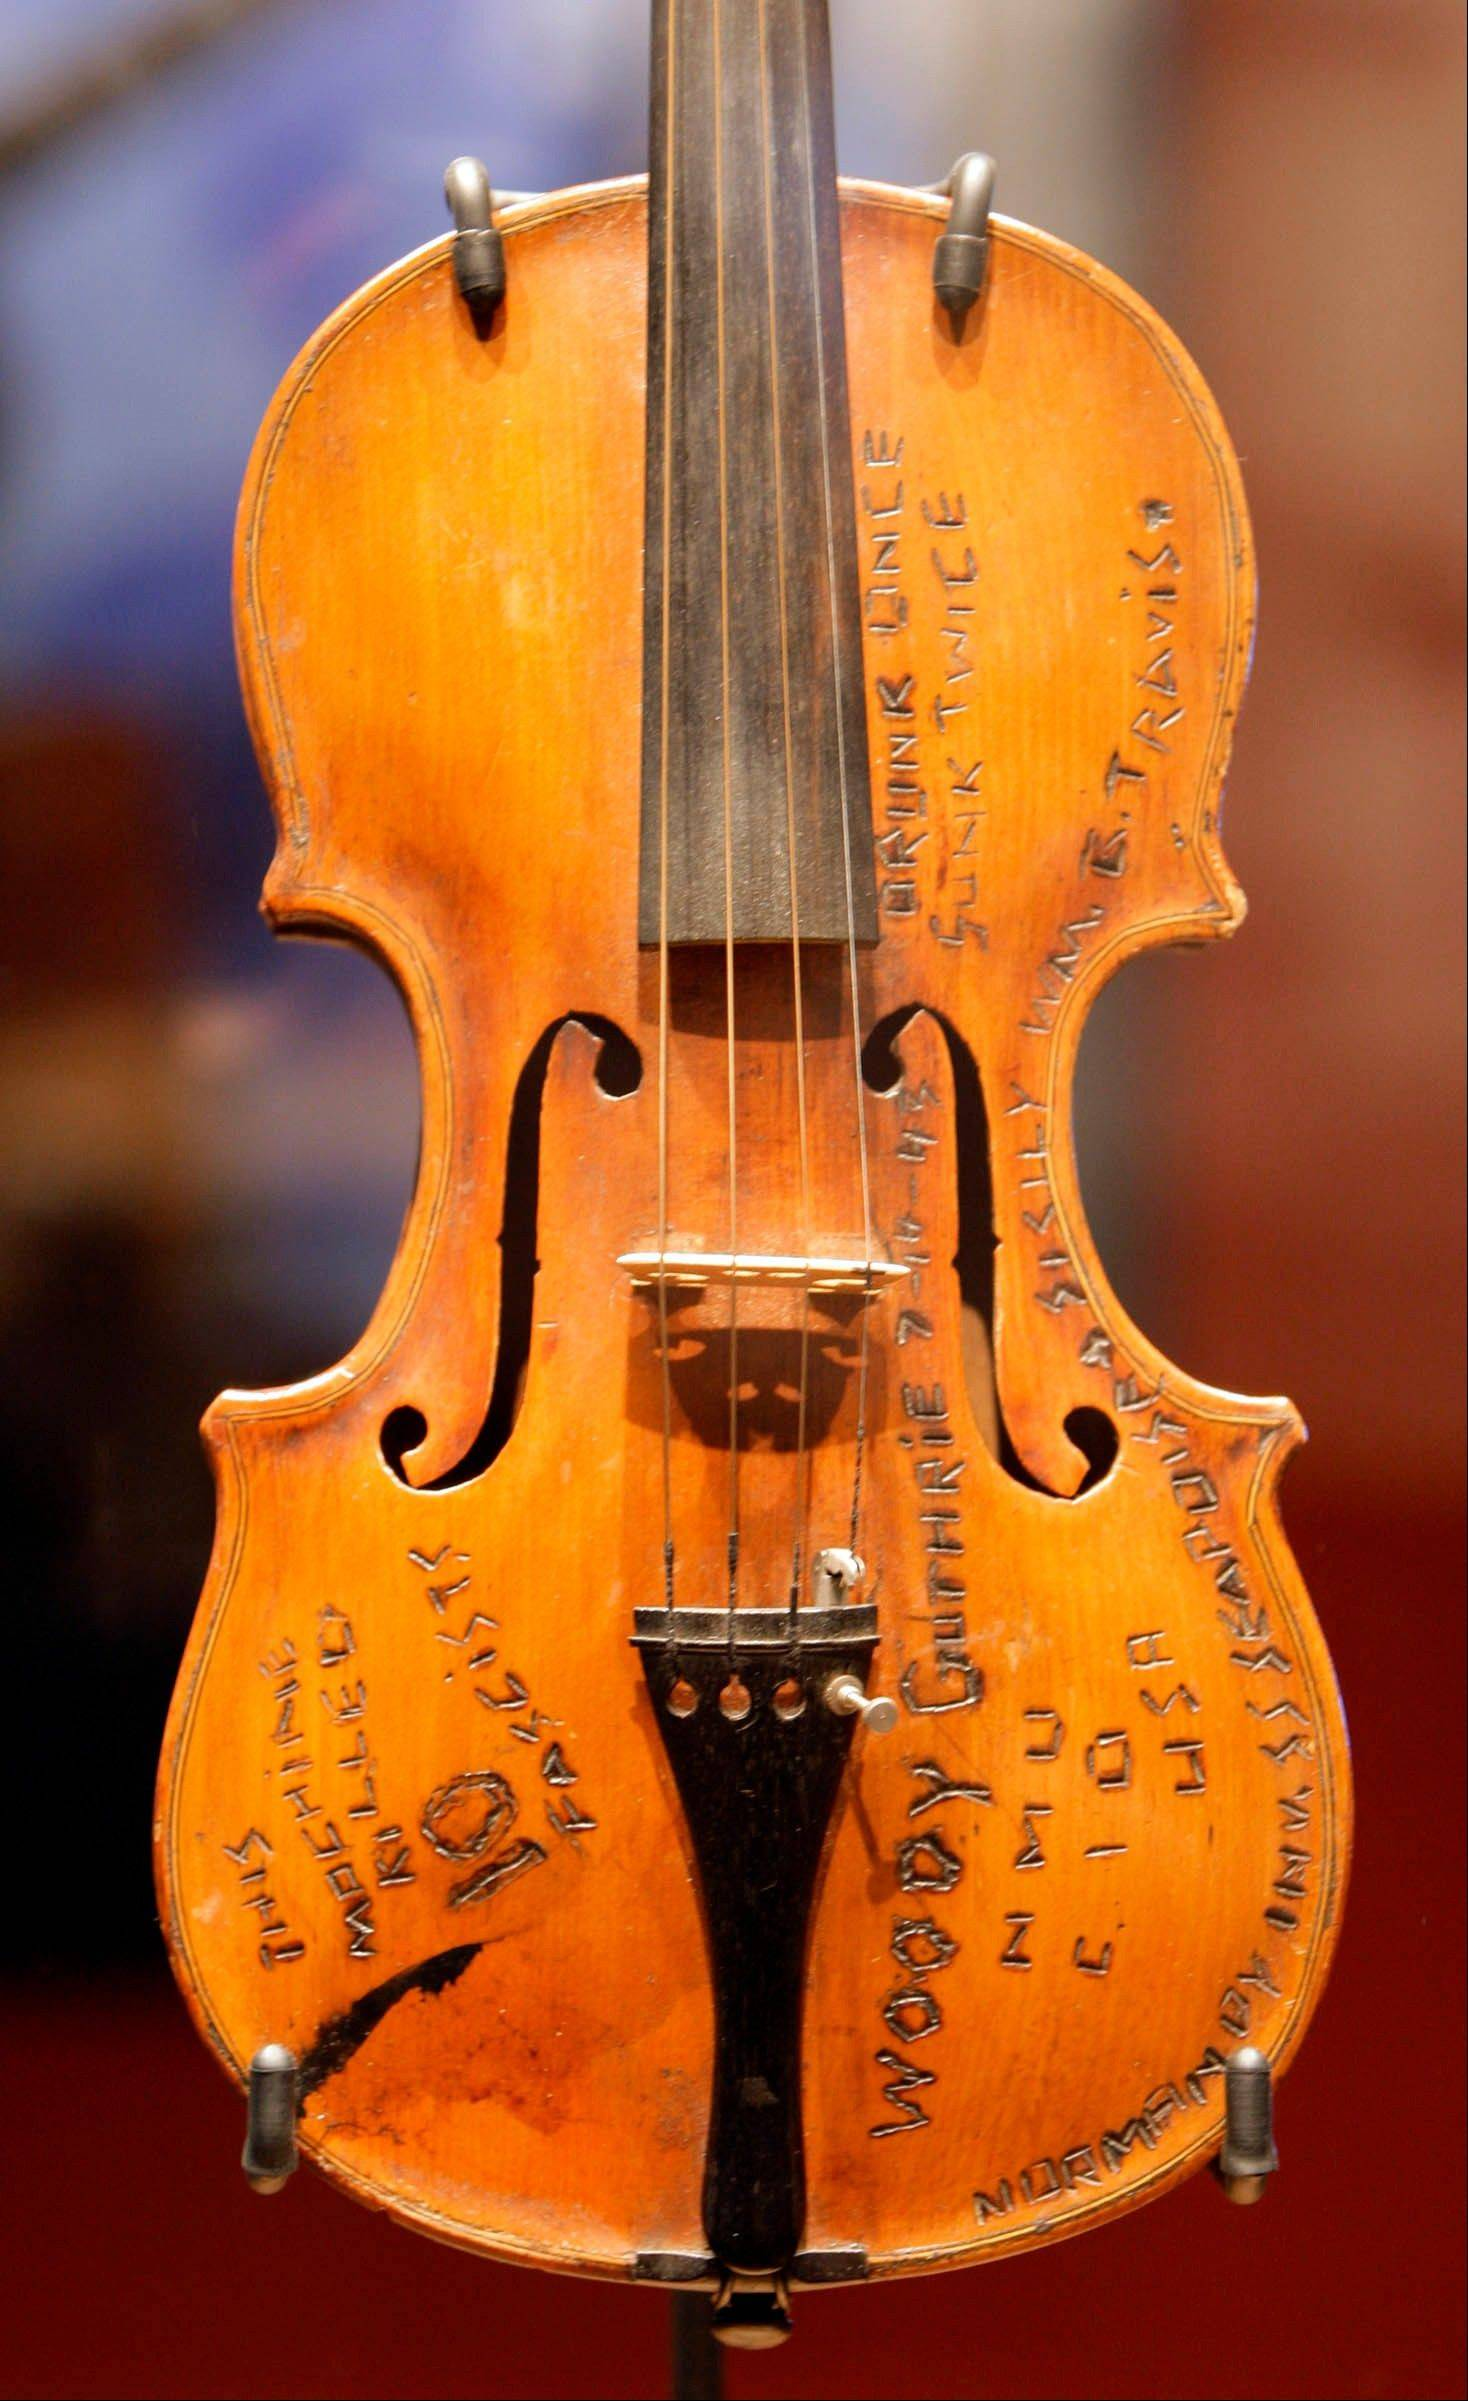 Woody Guthrie's violin, carved and woodburned with references to the time, is on display at the Woody Guthrie Center.